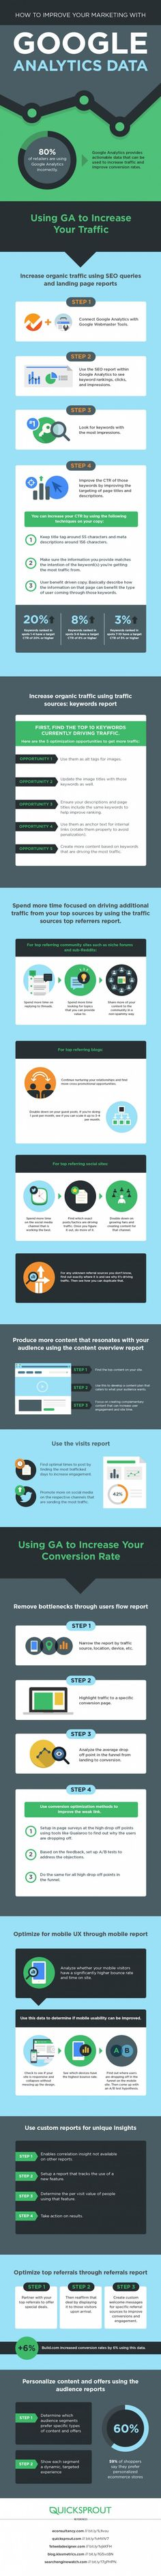 Using Google Analytics to improve your Digital Marketing [Infographic]